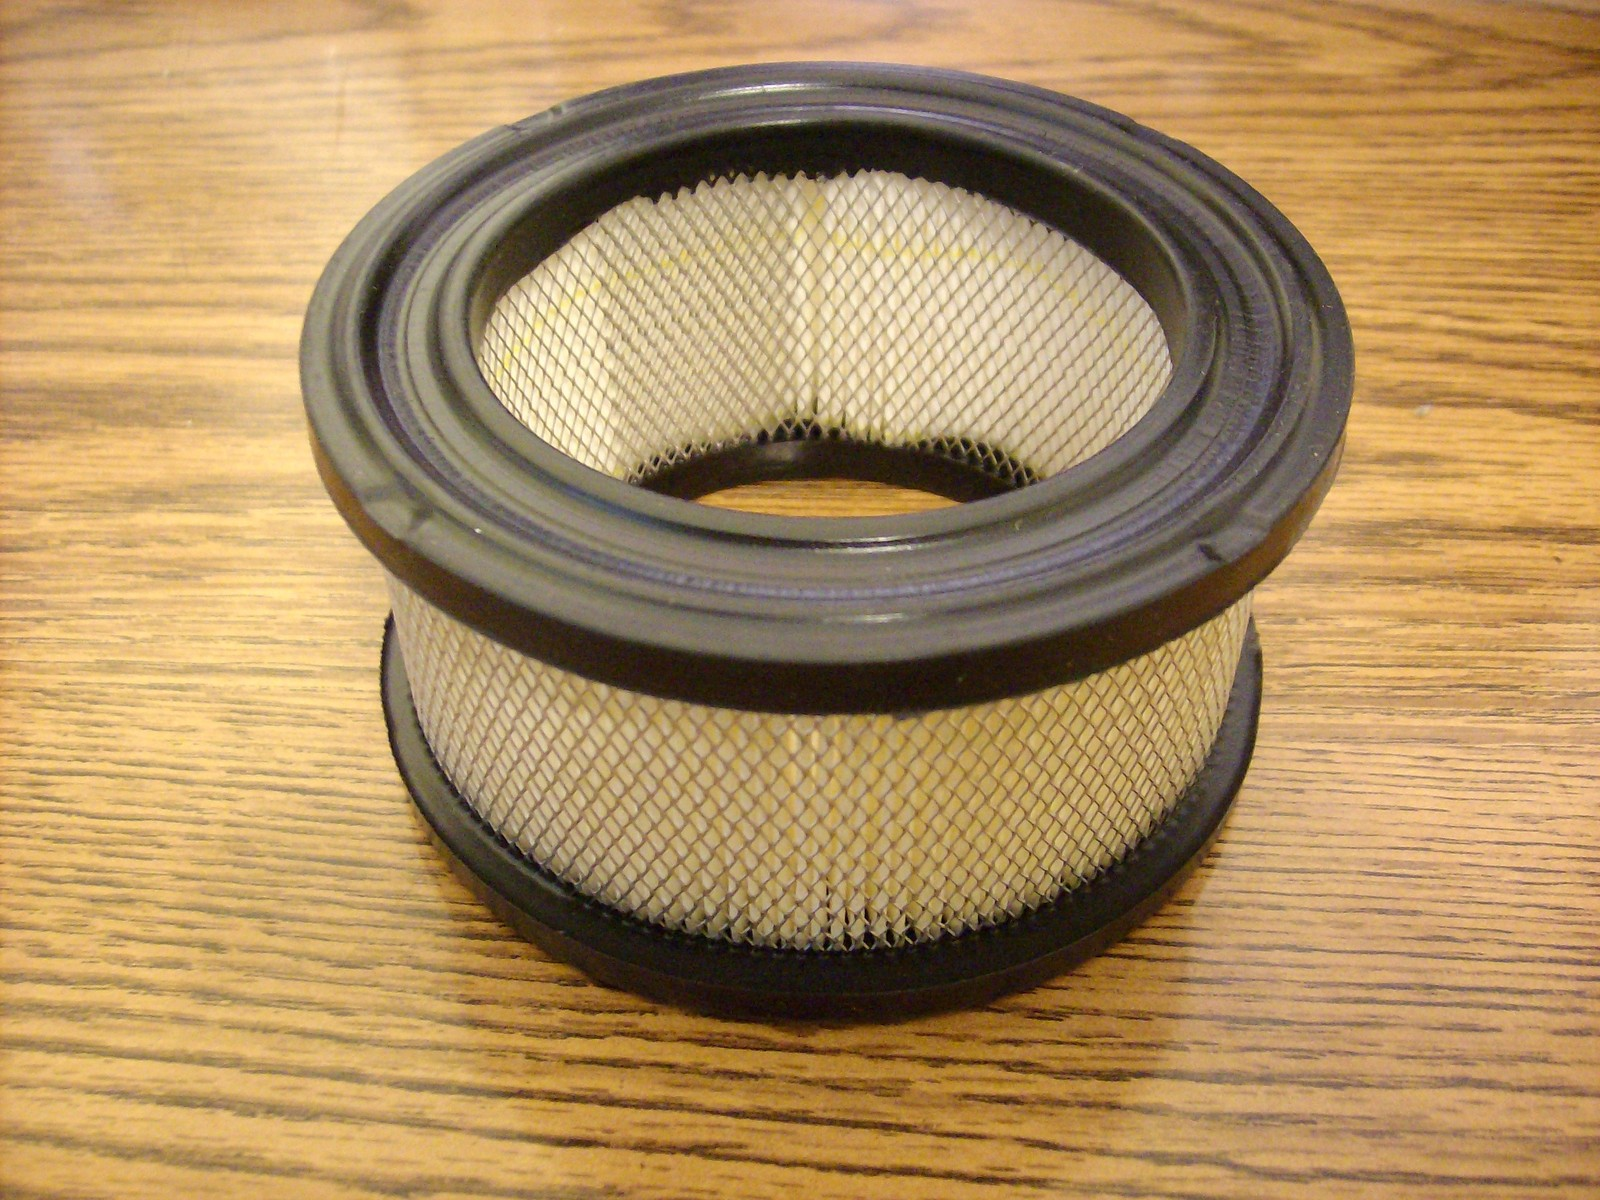 Lesco lawn mower air filter 006525